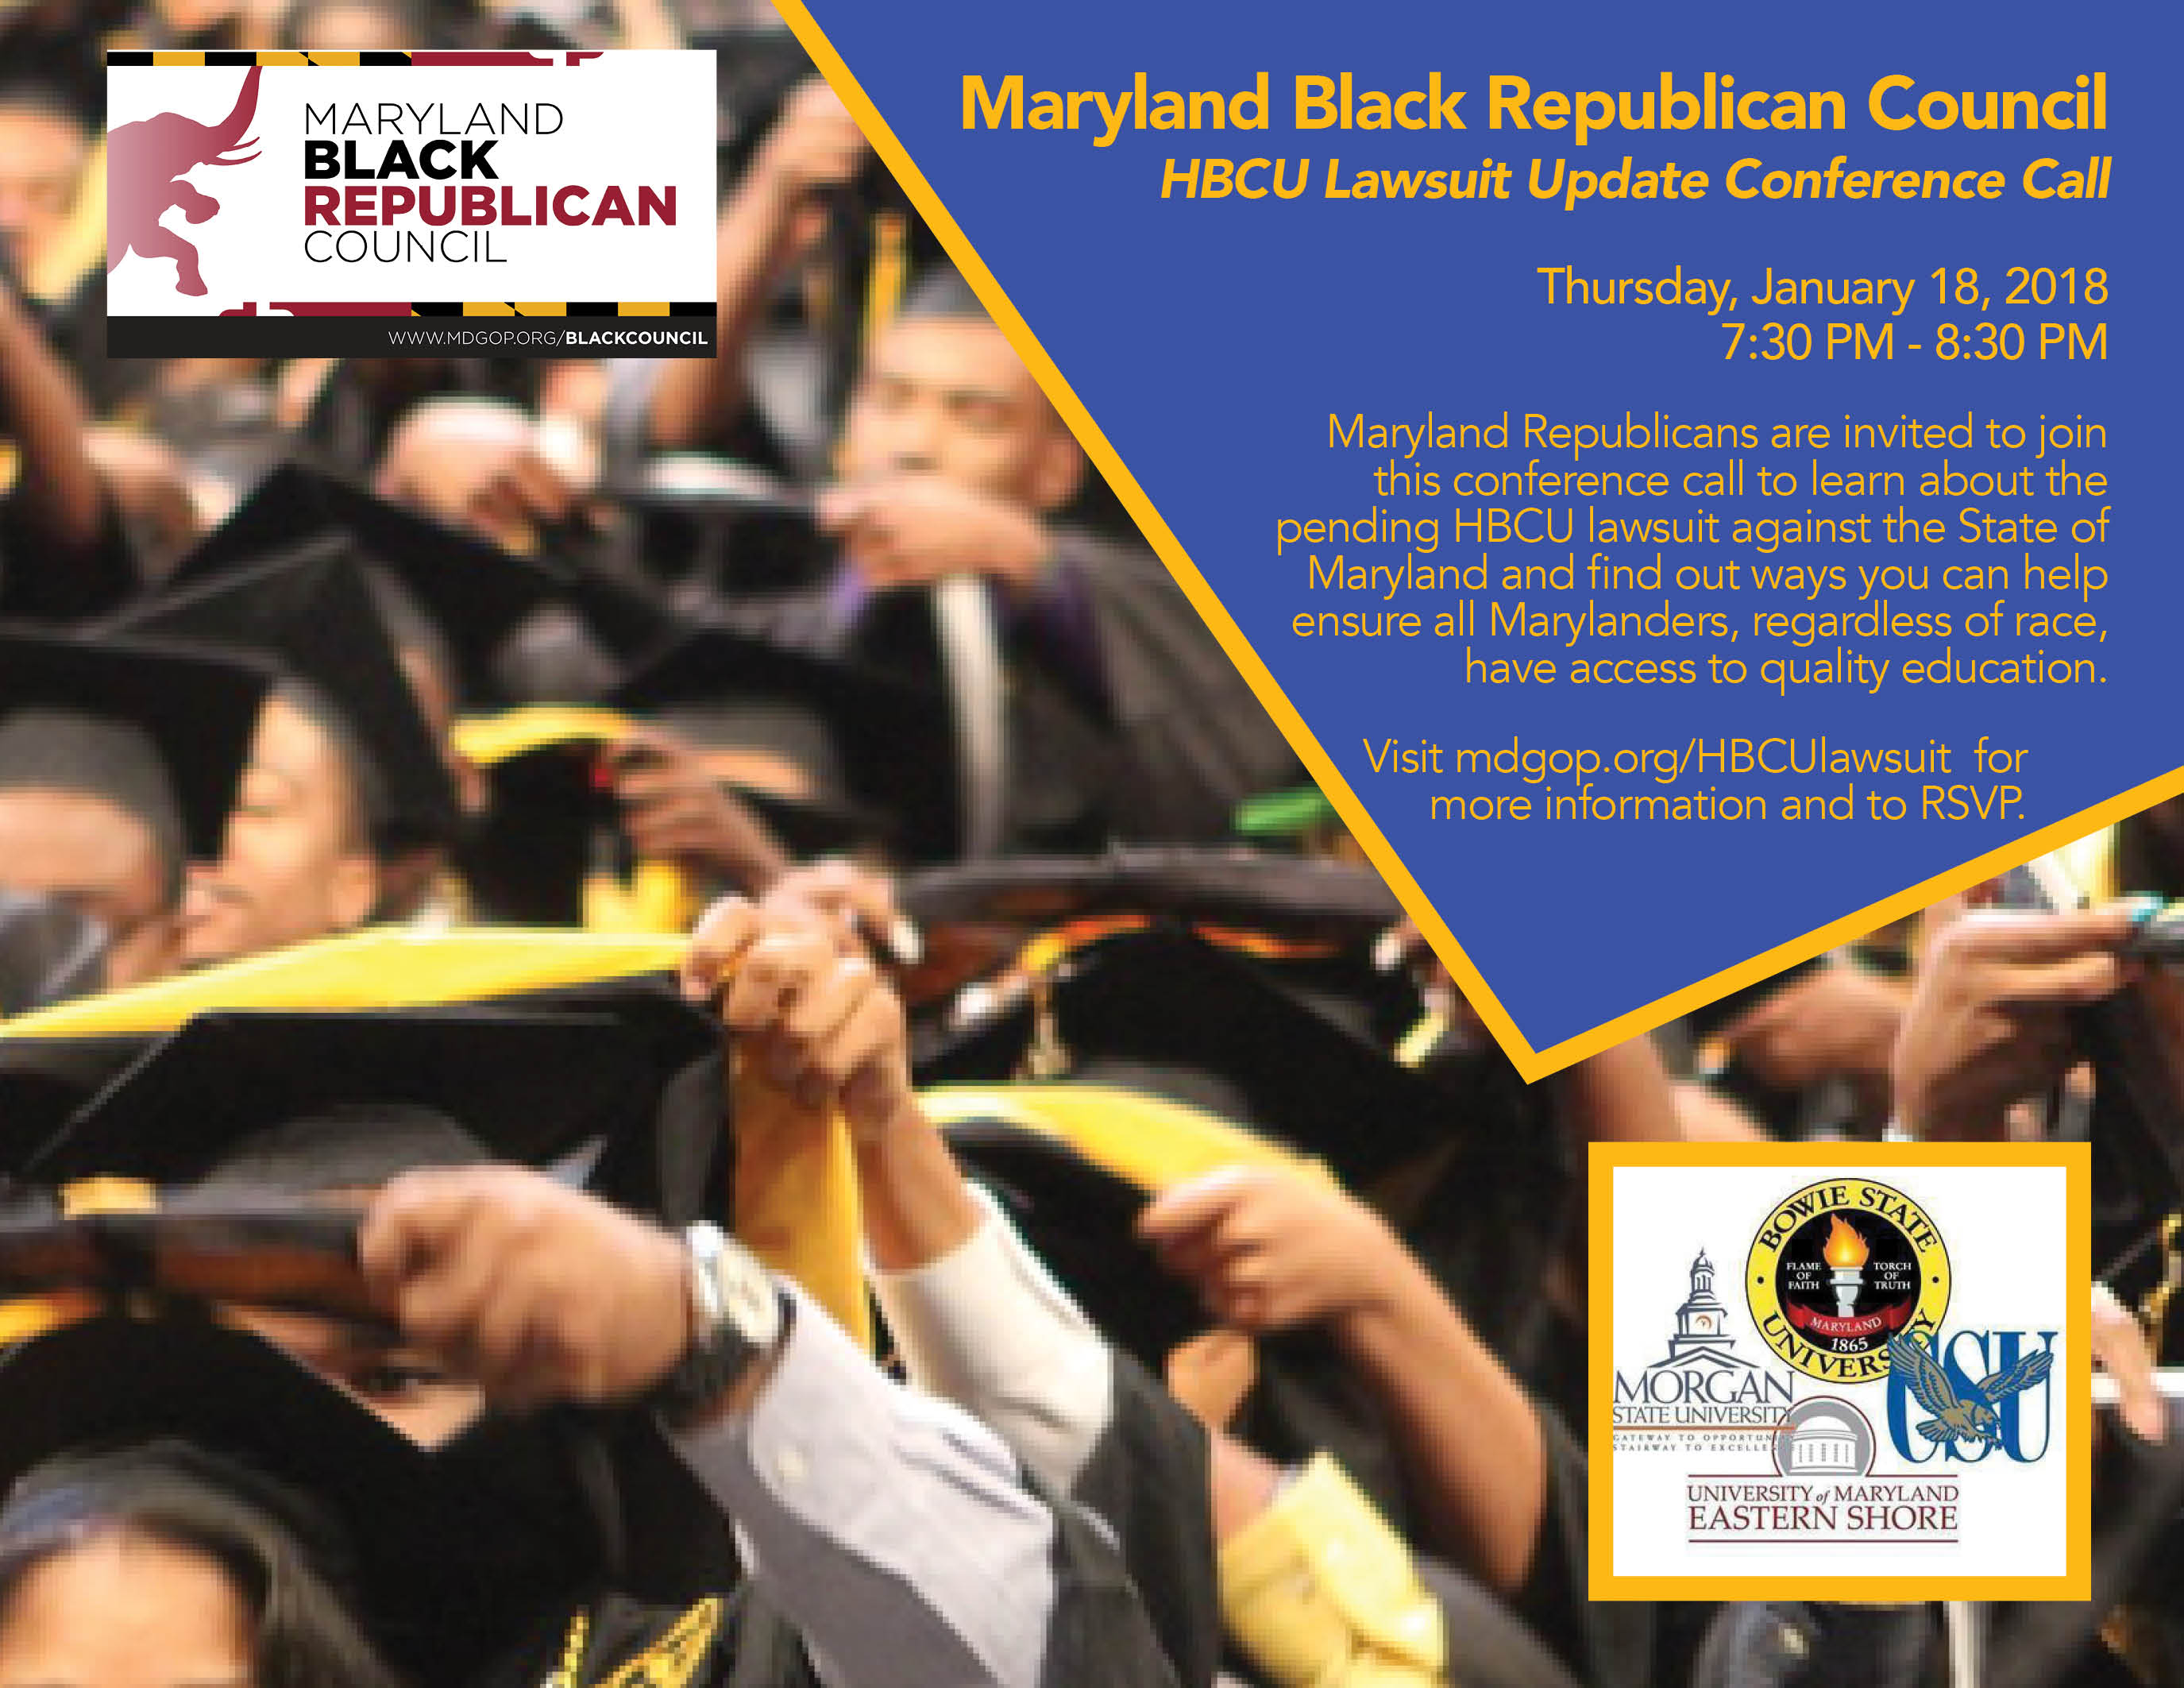 MDGOPBlackCouncil_HBCULawsuitConferenceCallFlyer.jpg